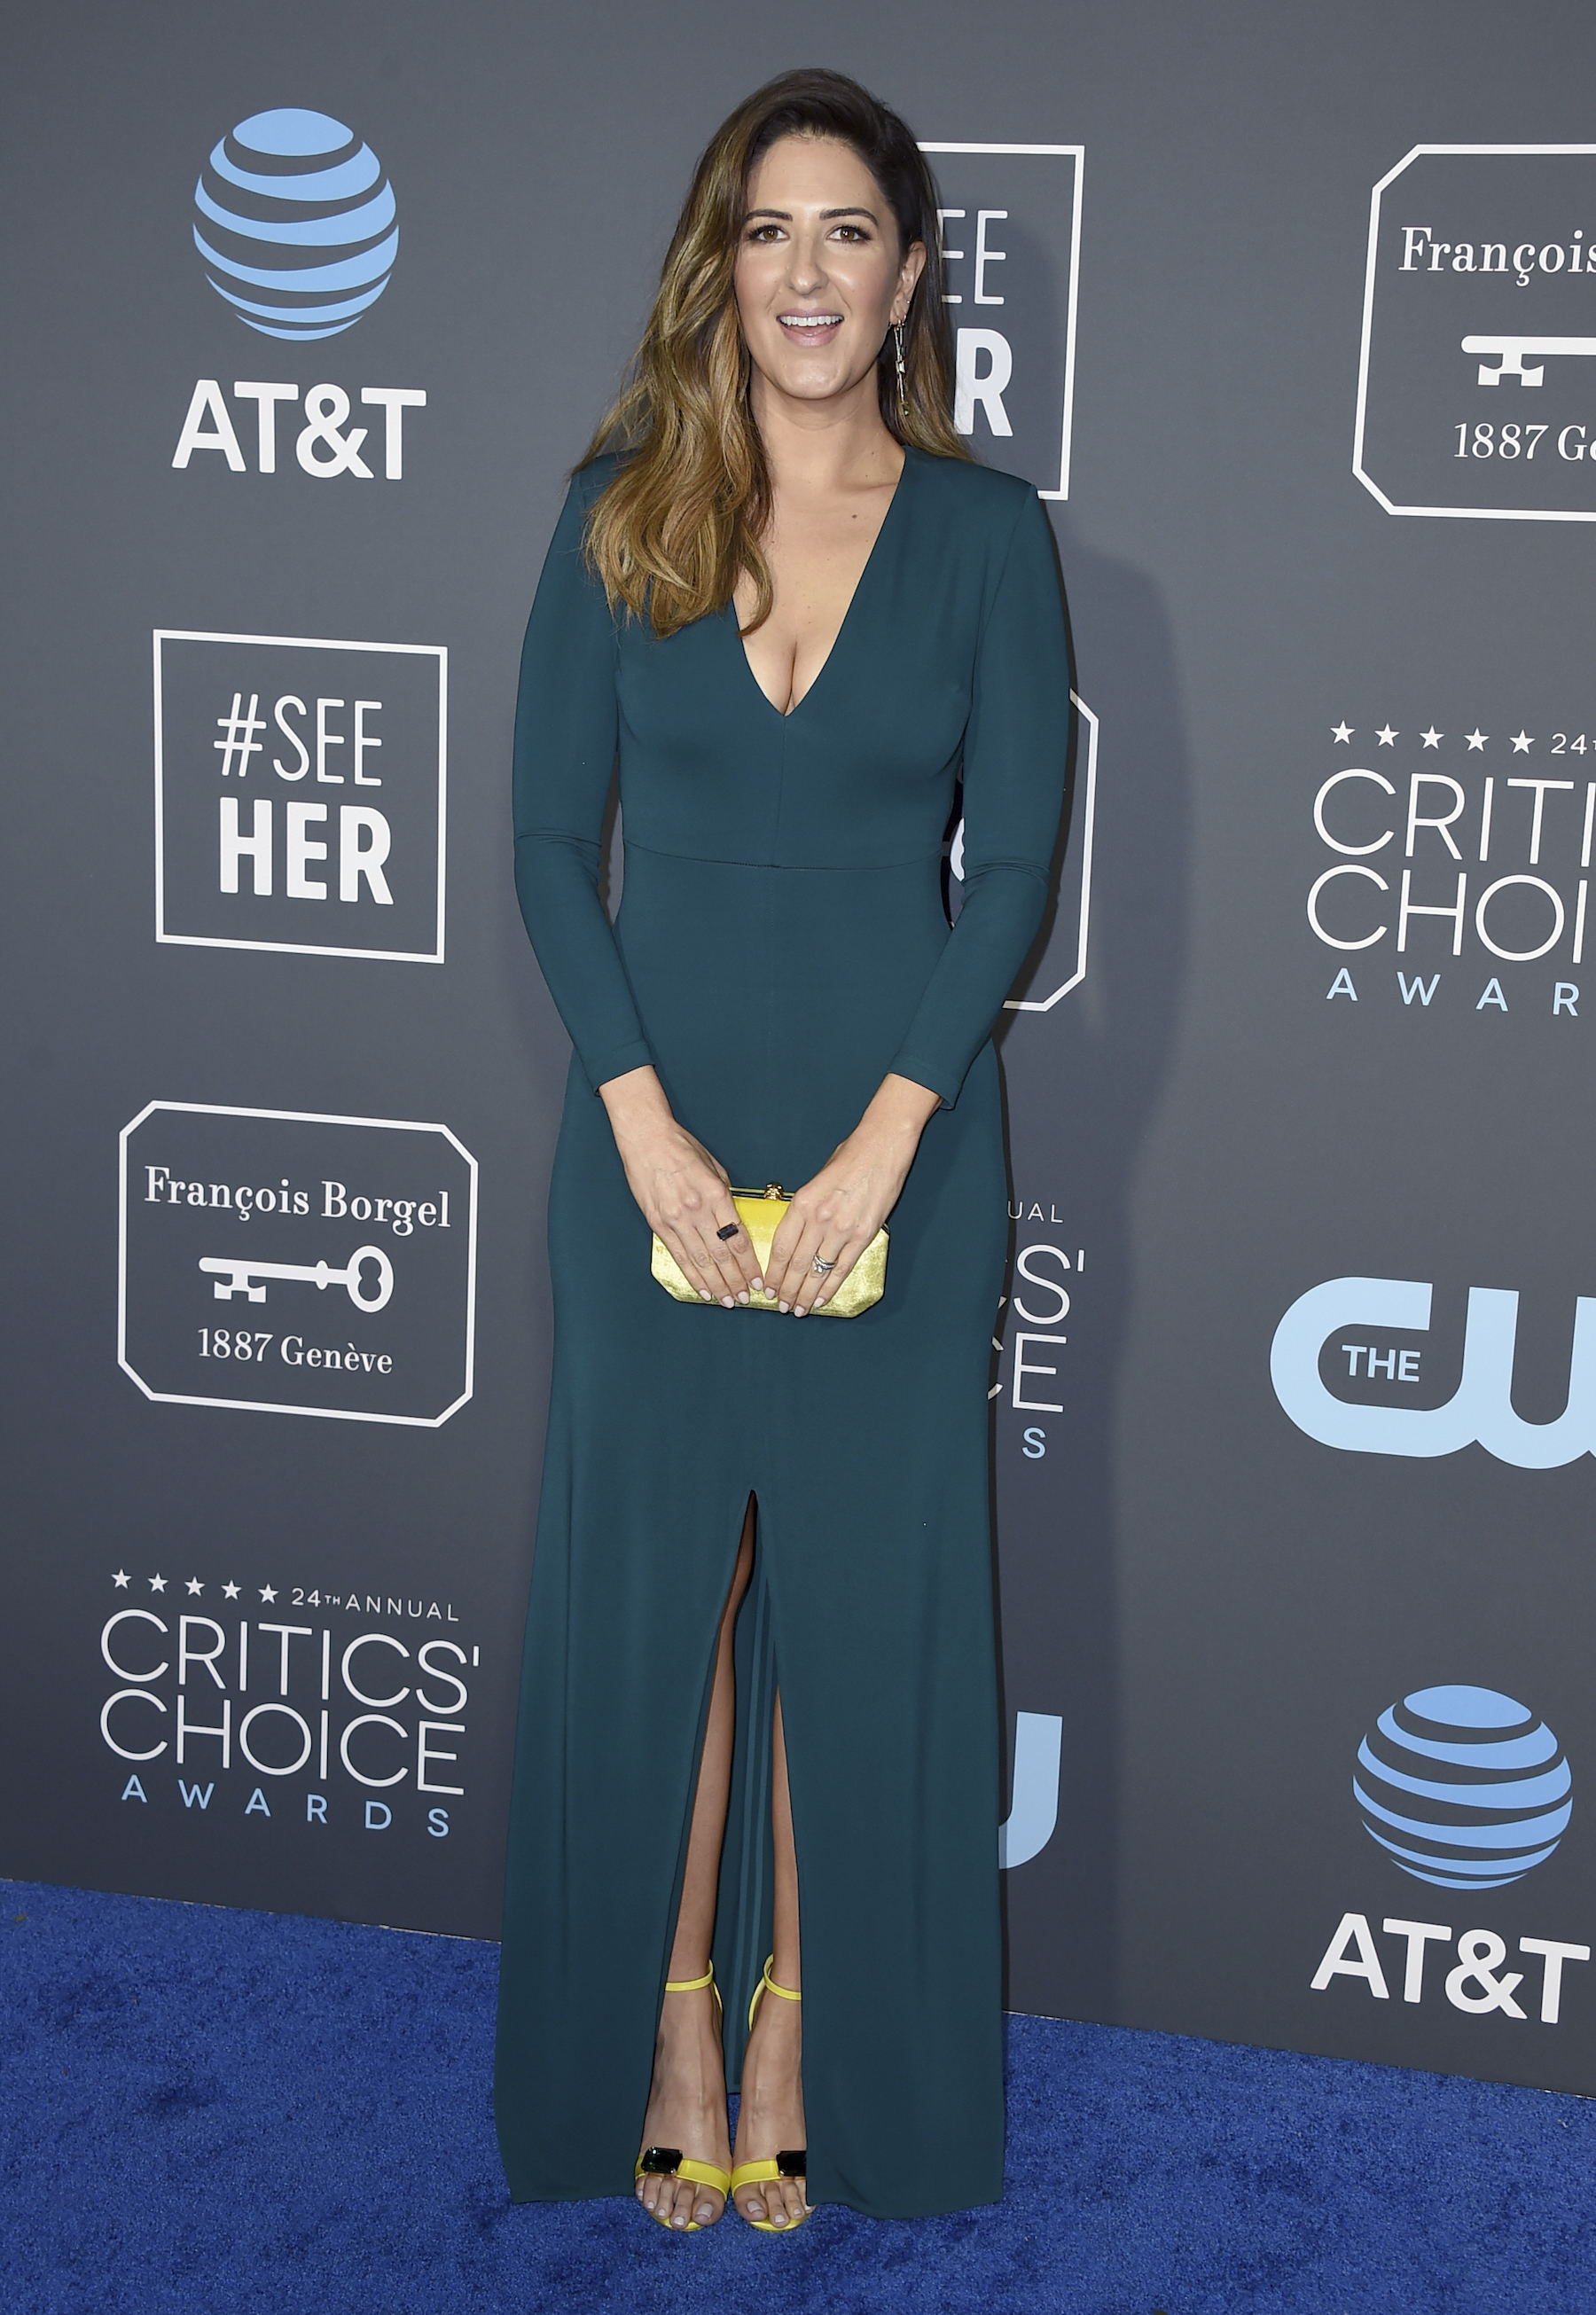 "<div class=""meta image-caption""><div class=""origin-logo origin-image ap""><span>AP</span></div><span class=""caption-text"">D'Arcy Carden arrives at the 24th annual Critics' Choice Awards on Sunday, Jan. 13, 2019, at the Barker Hangar in Santa Monica, Calif. (Jordan Strauss/Invision/AP)</span></div>"